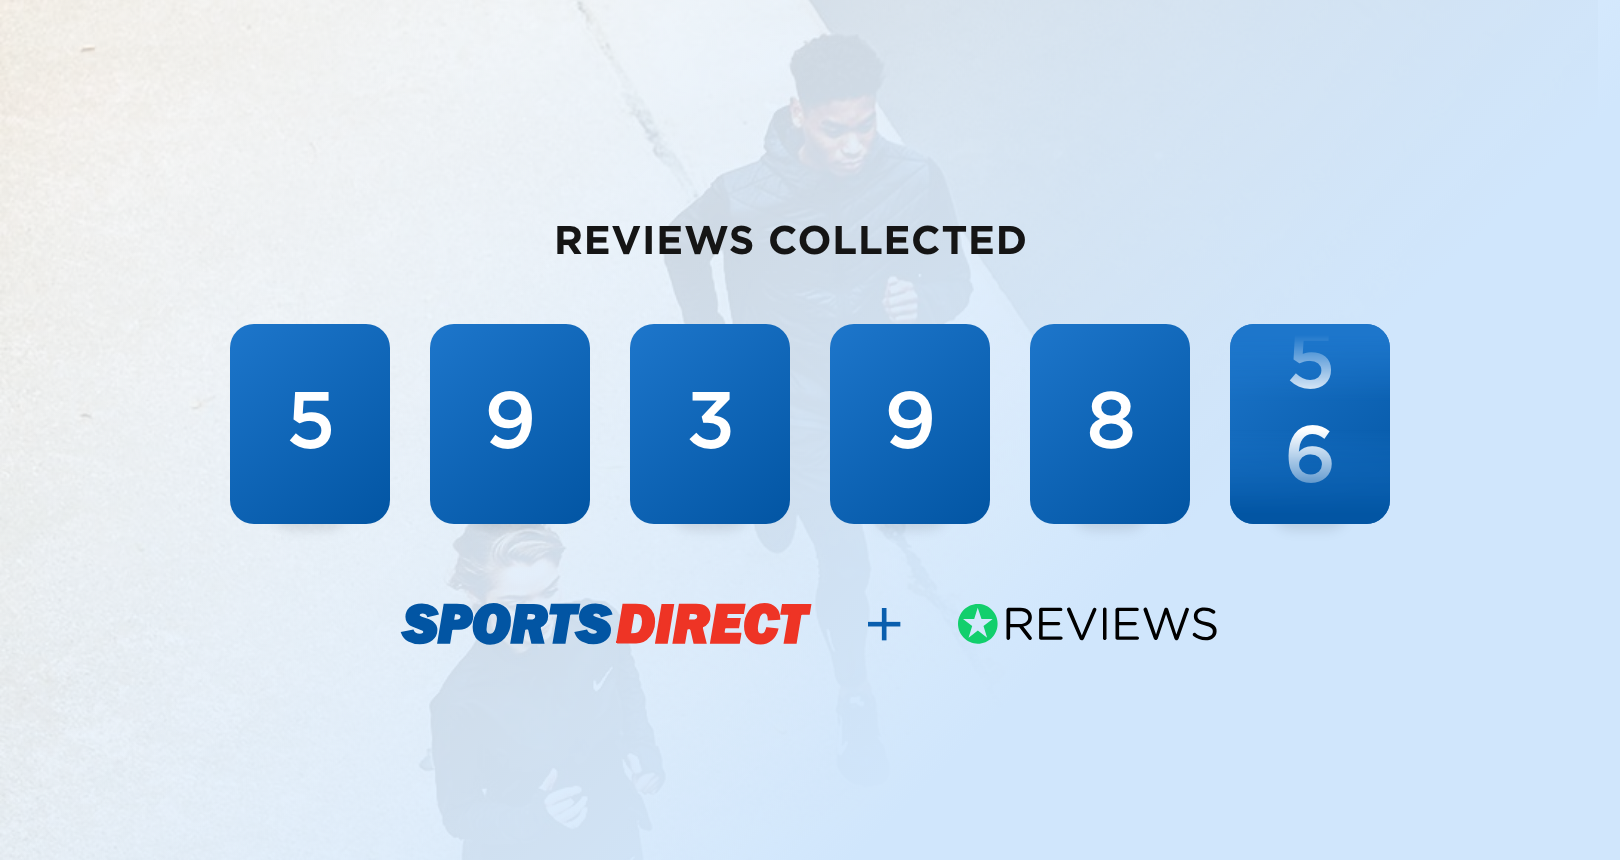 Sports Direct have collected the most reviews of any UK company